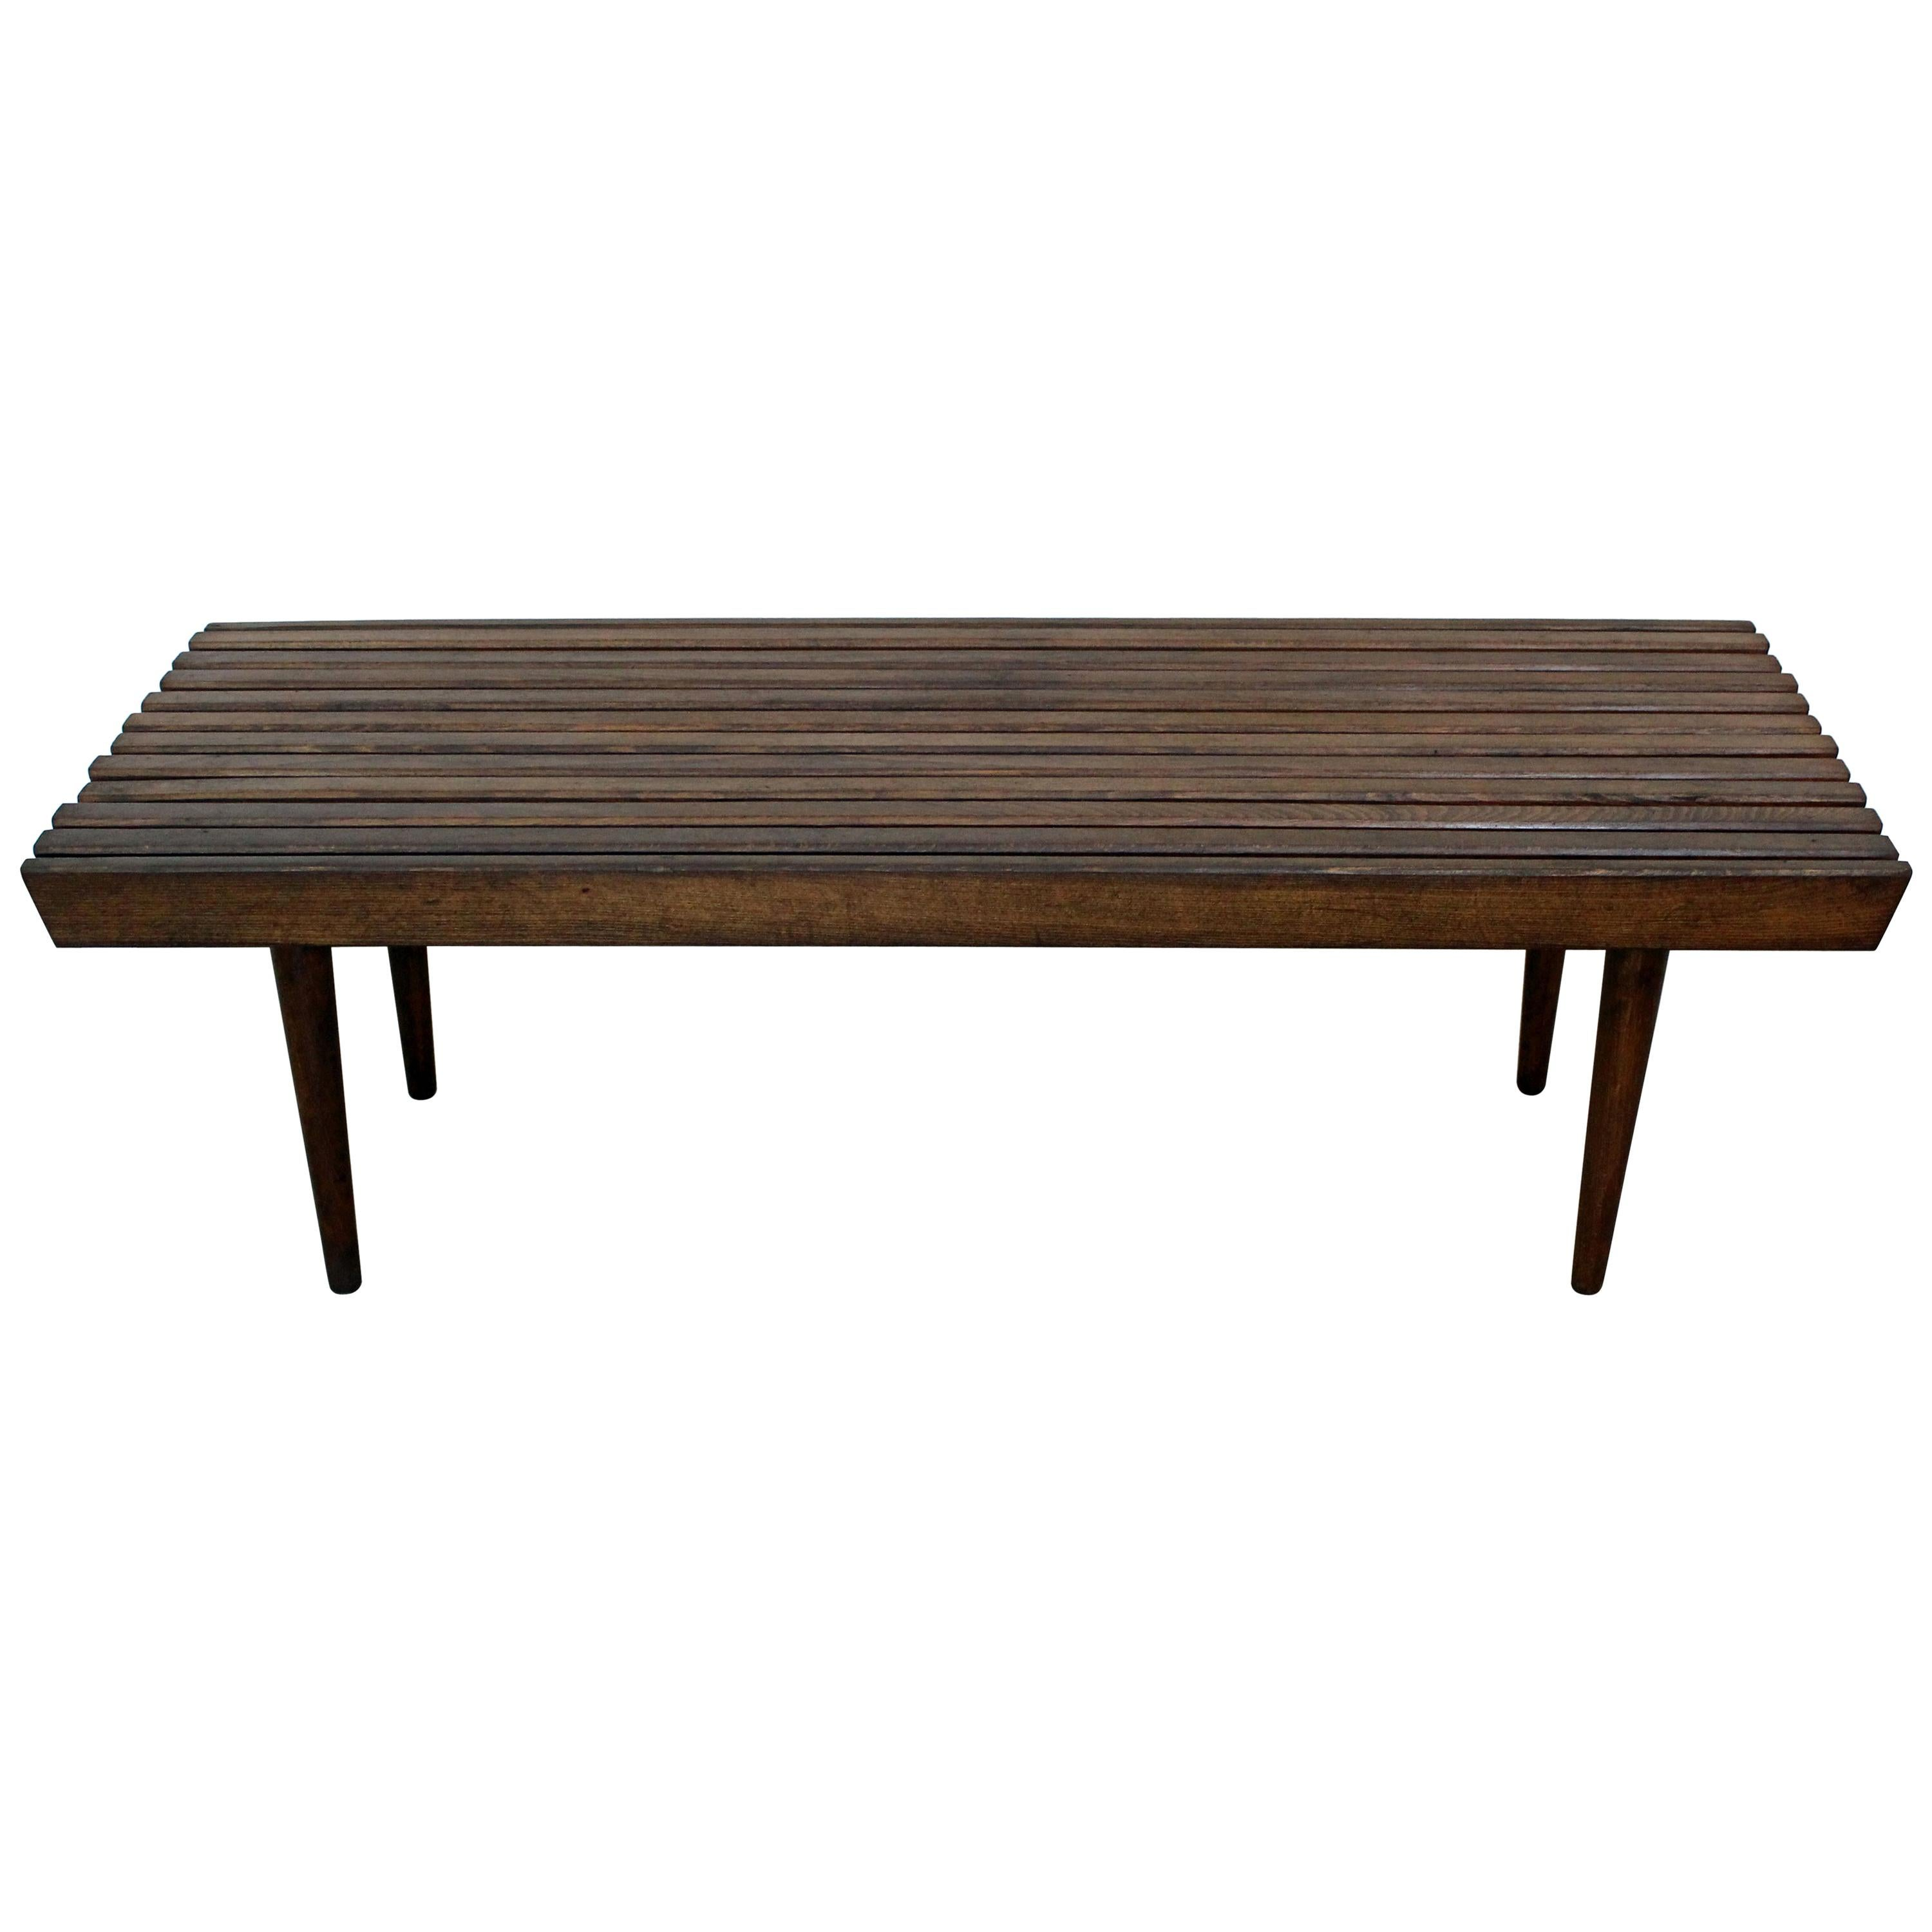 Mid Century Modern Walnut Slat Bench Coffee Table At 1stdibs